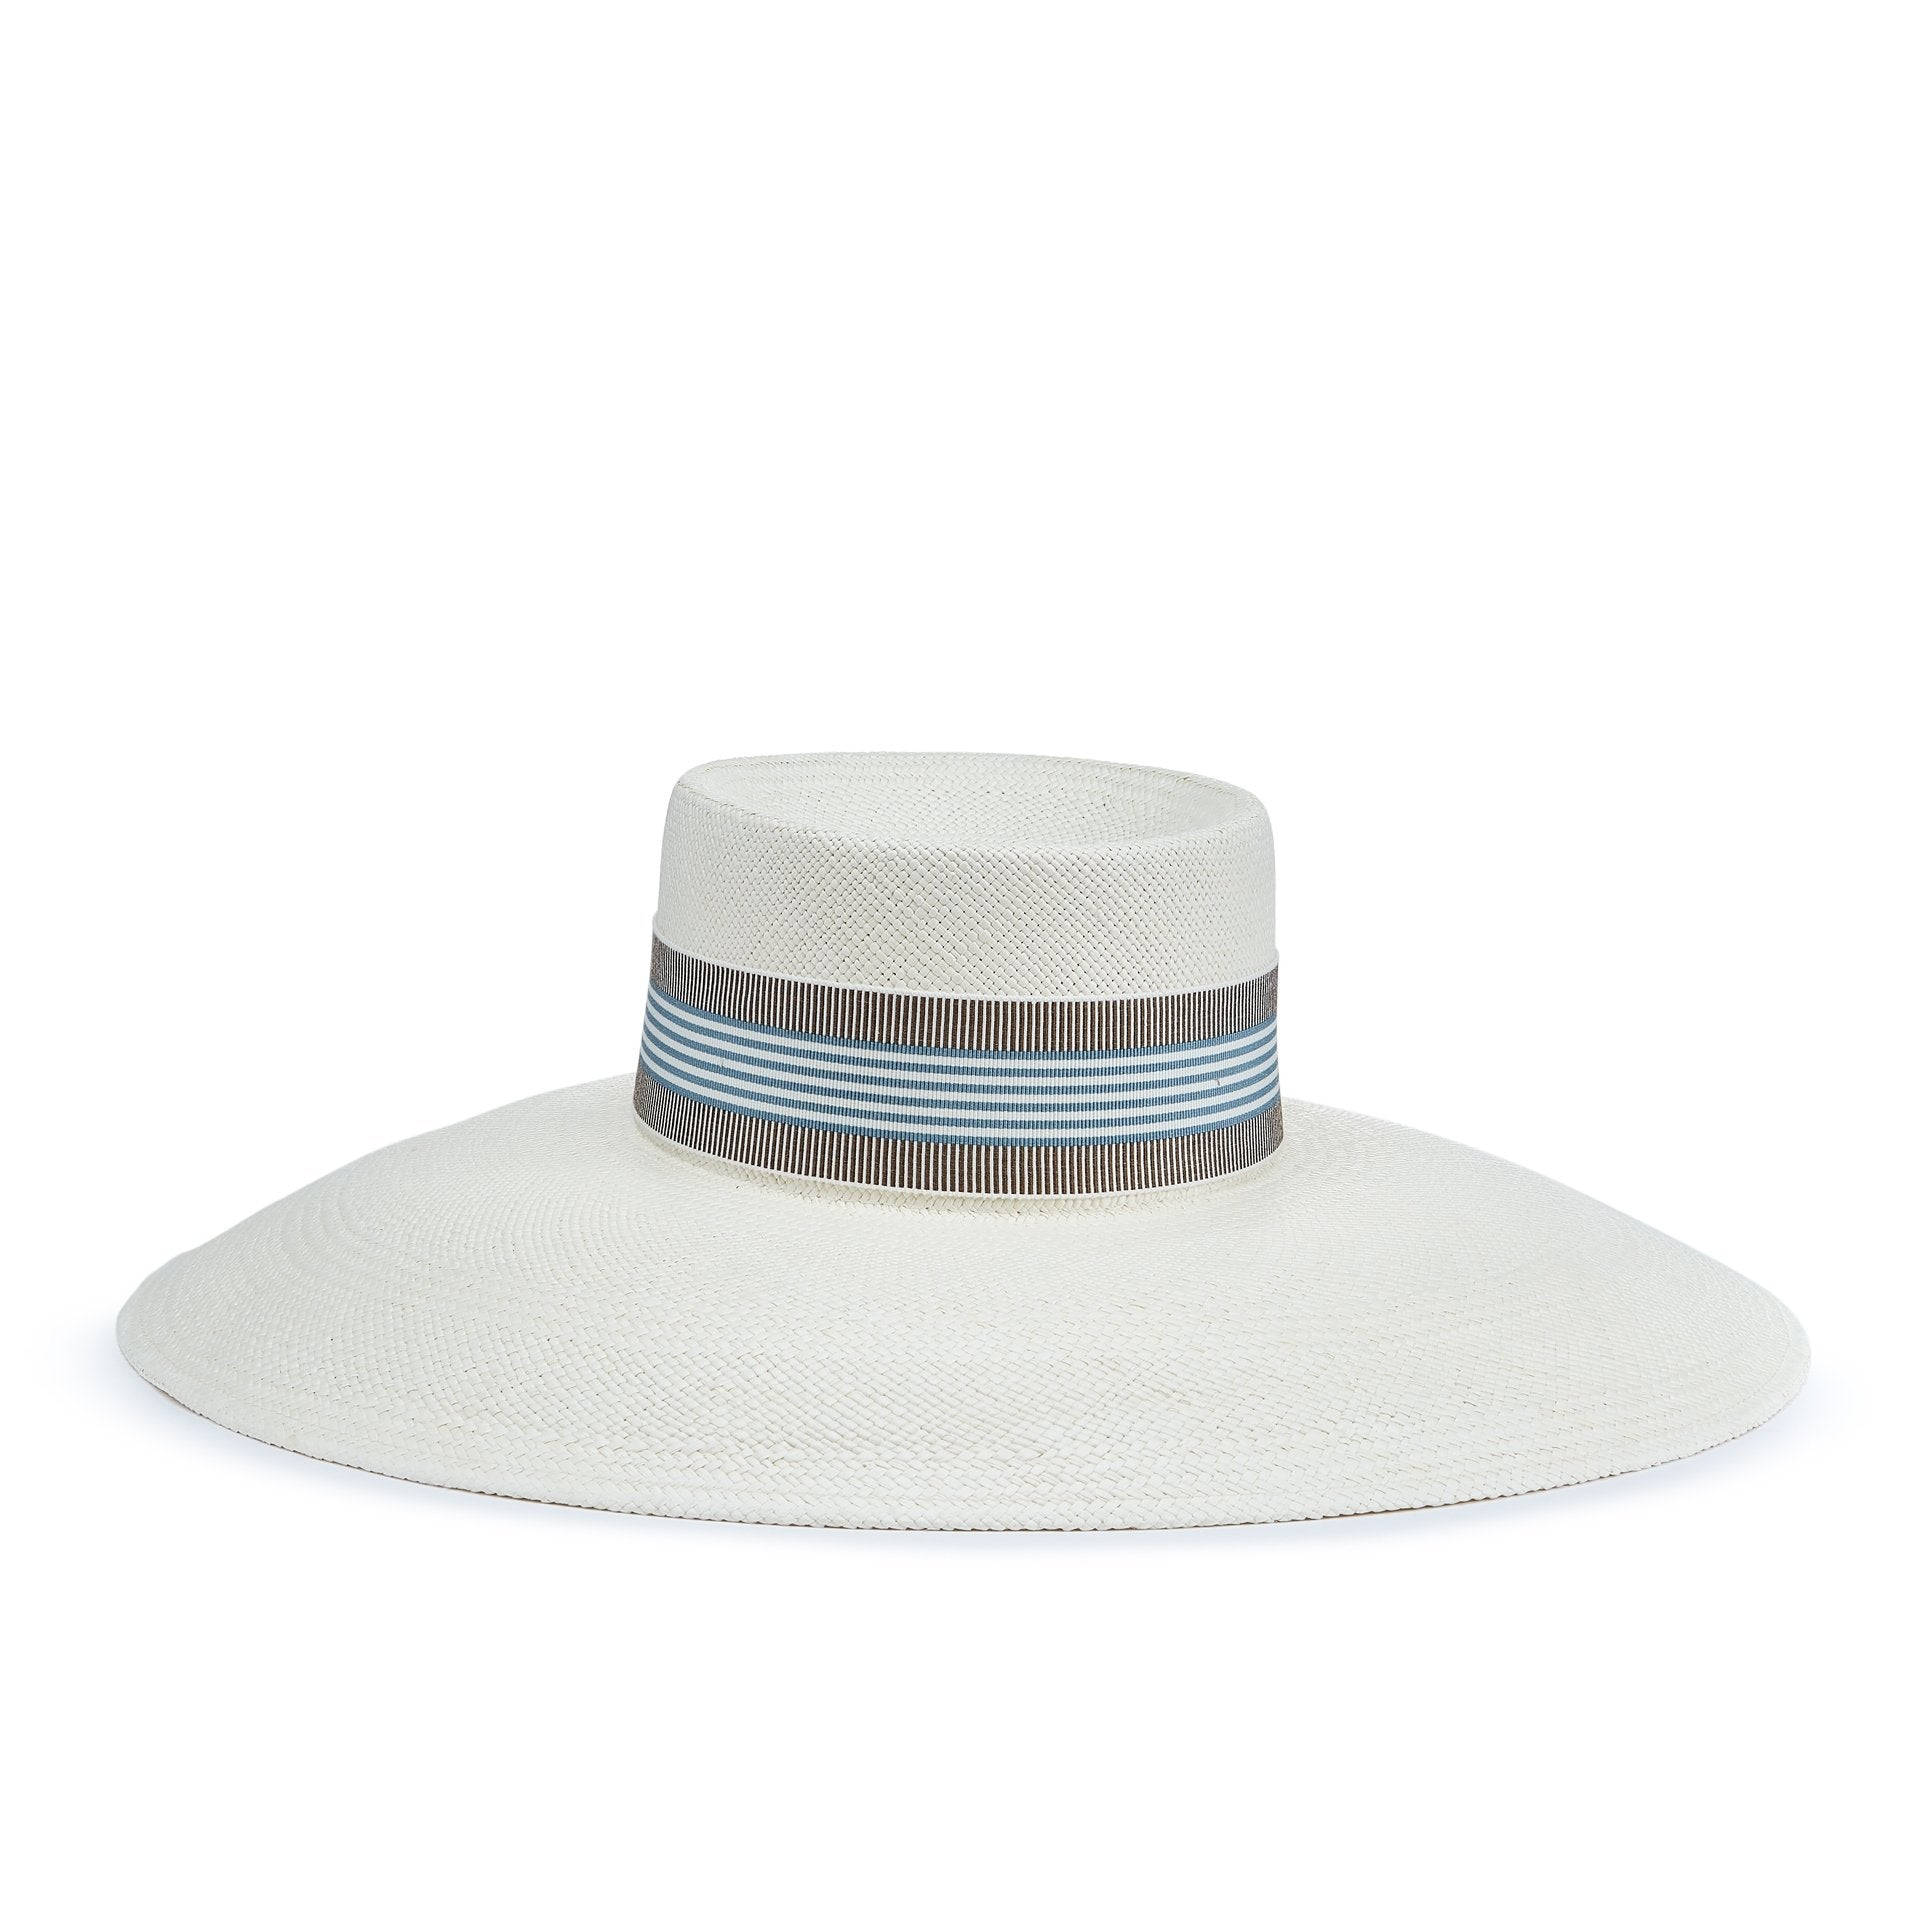 Thebes wide brim Panama - Panamas, Straw and Sun Hats for Women - Lock & Co. Hatters London UK